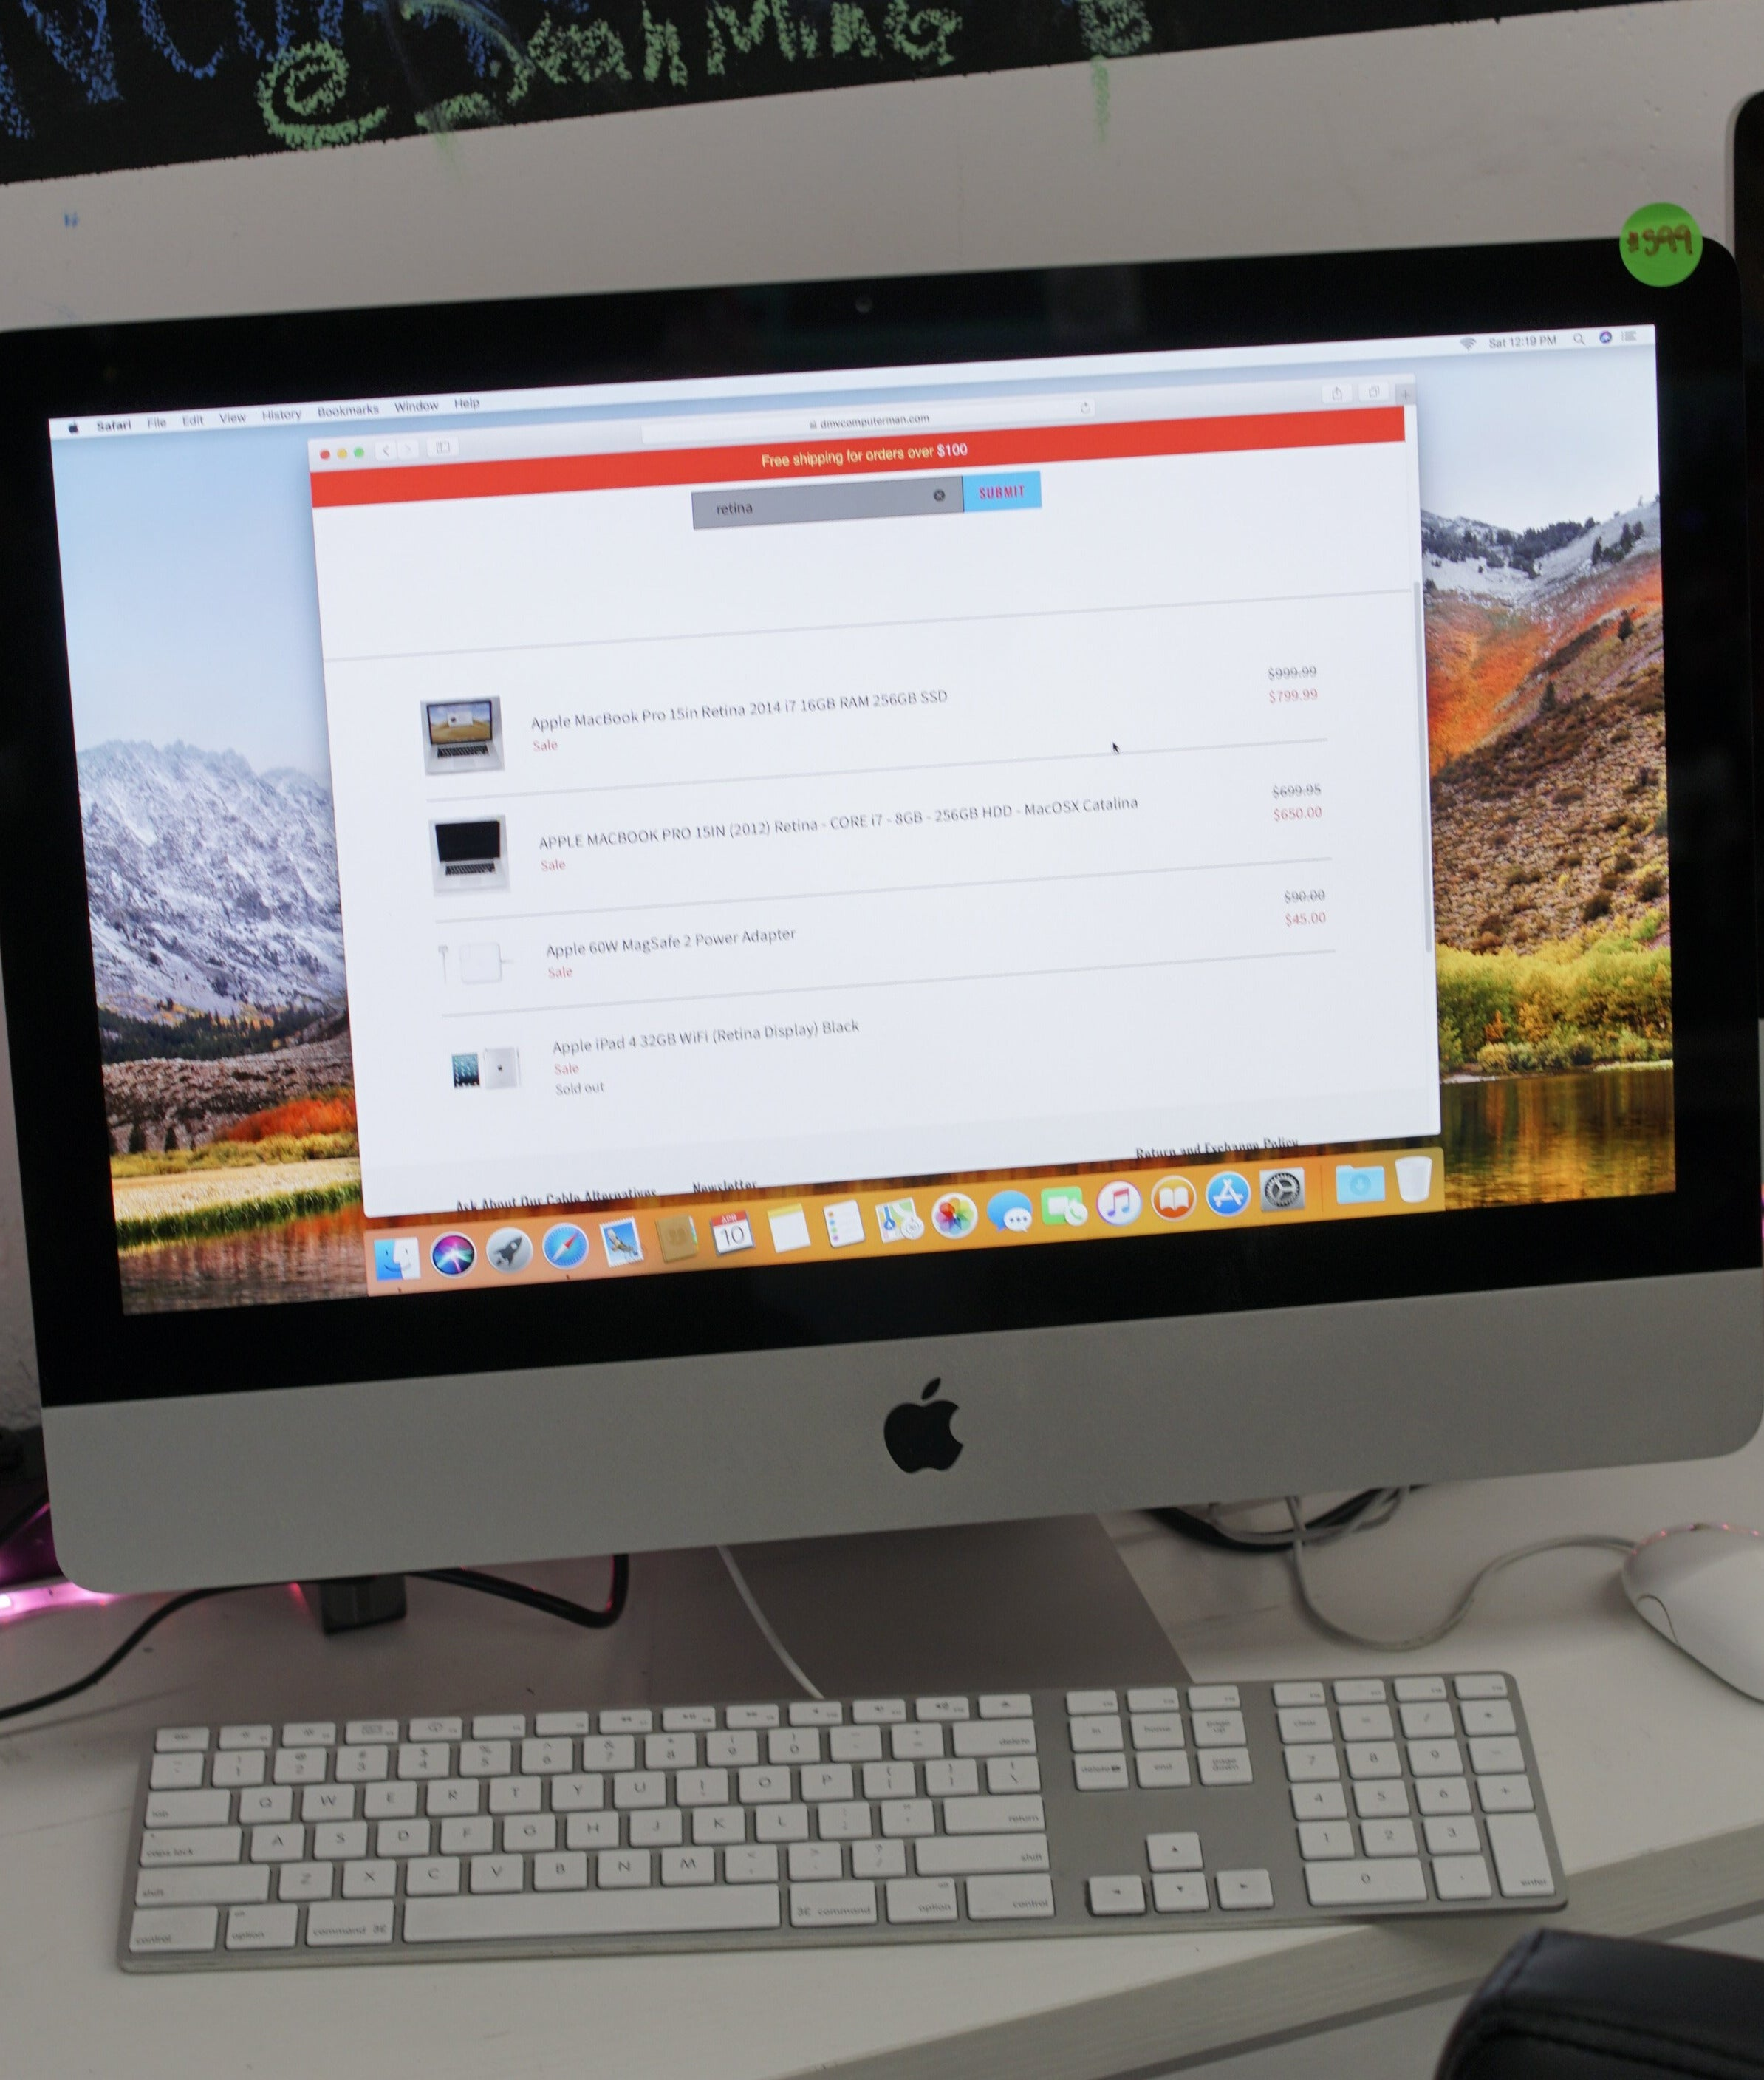 APPLE iMAC 21.5 2011 CORE i5 8GB Ram